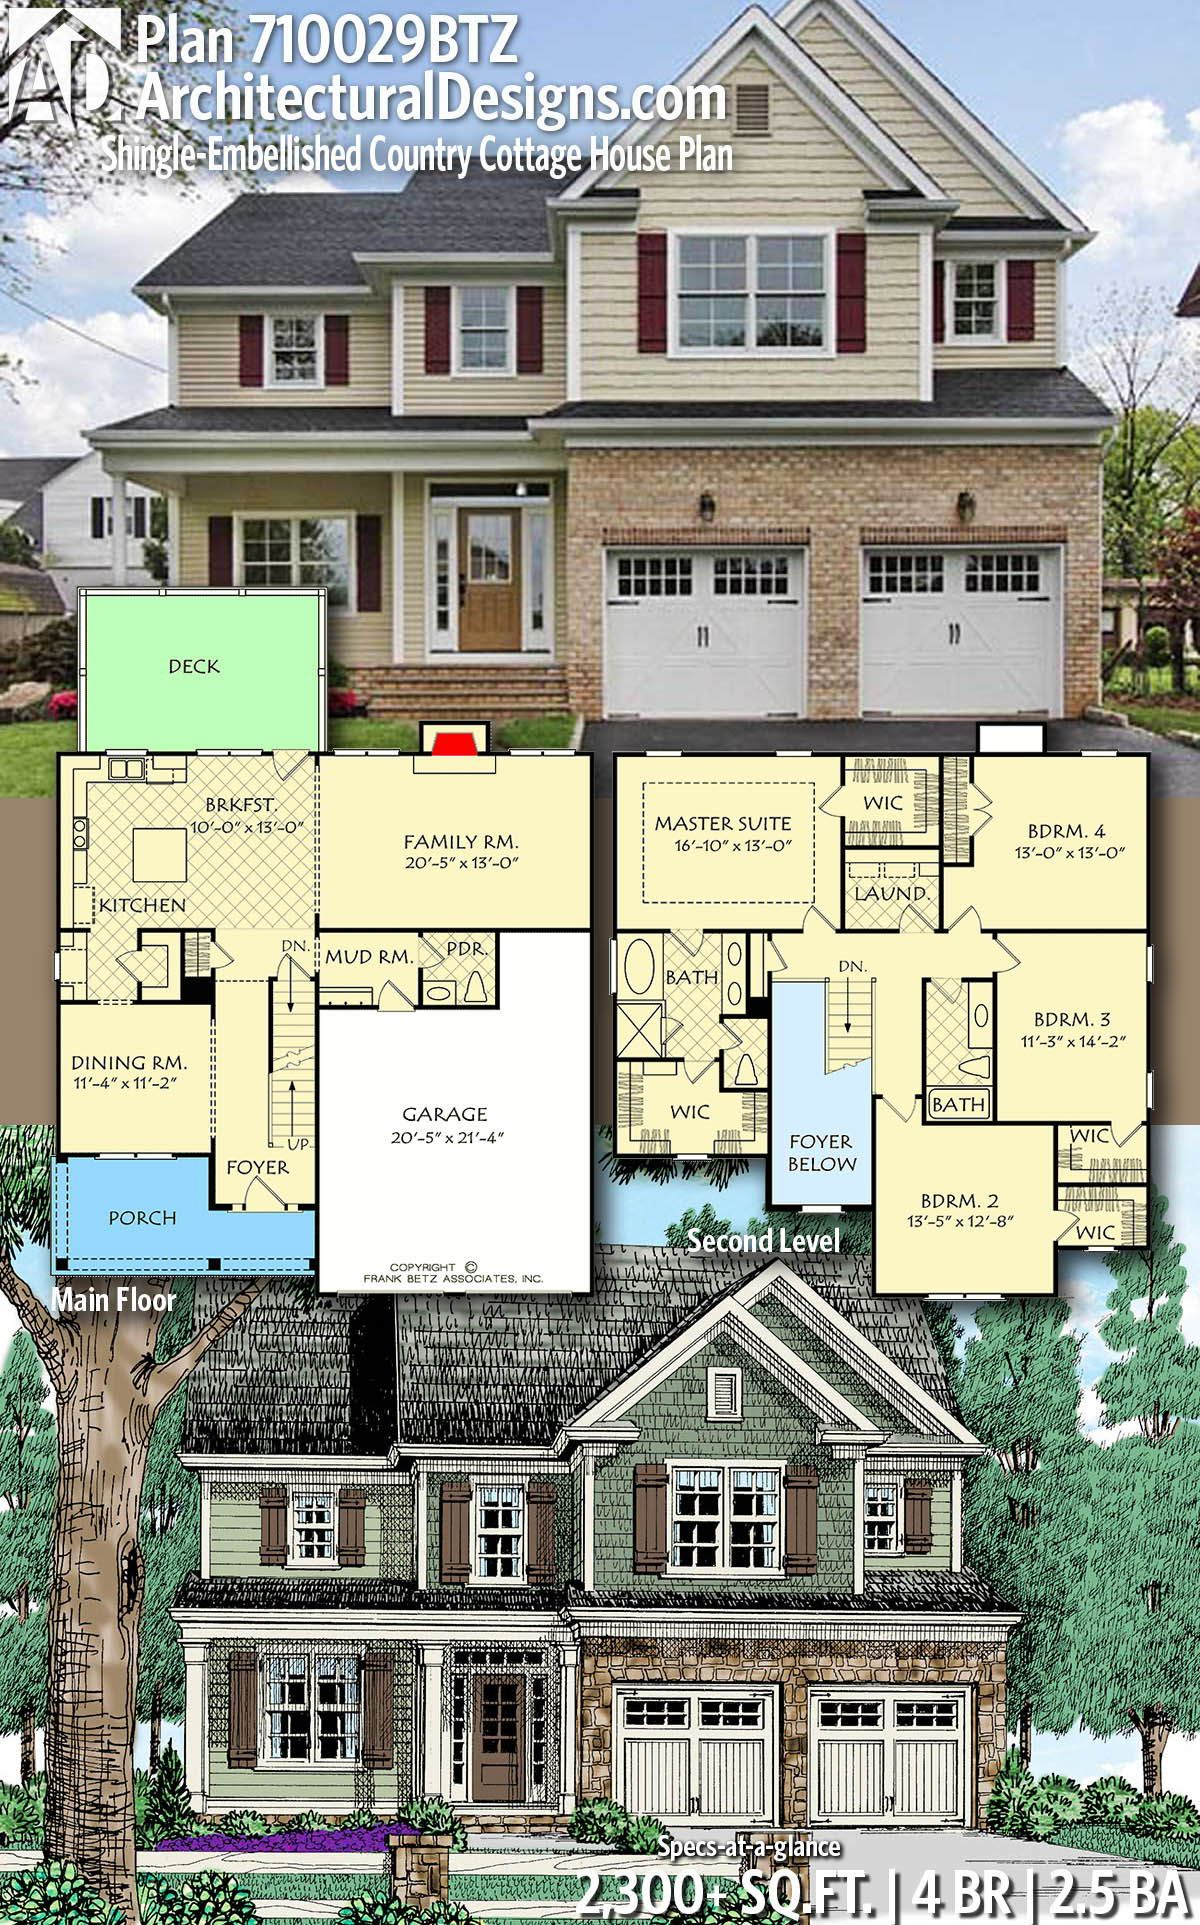 Architectural designs home plan btz gives you bedrooms baths and sq also rh co pinterest